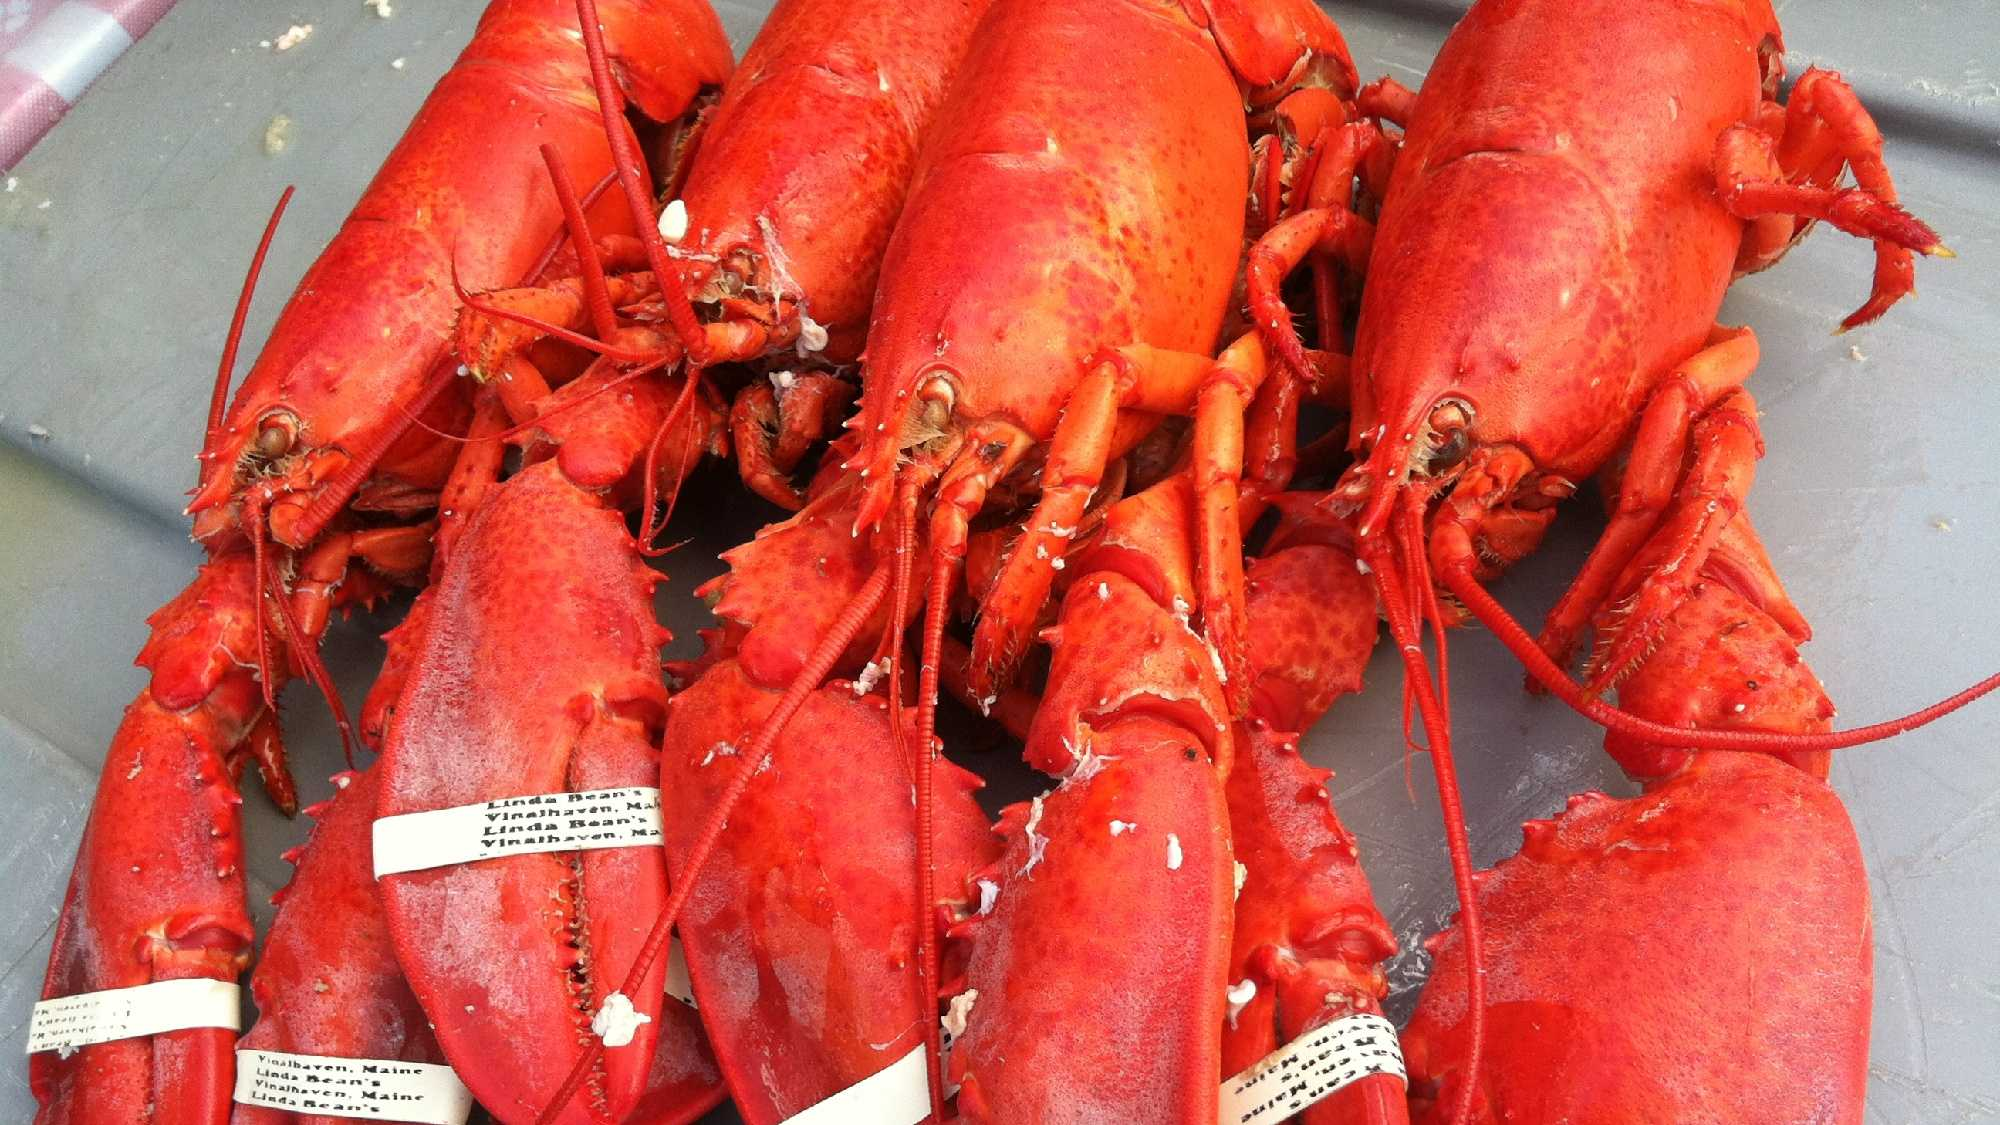 This is the 68th year for the Maine Lobster Festival